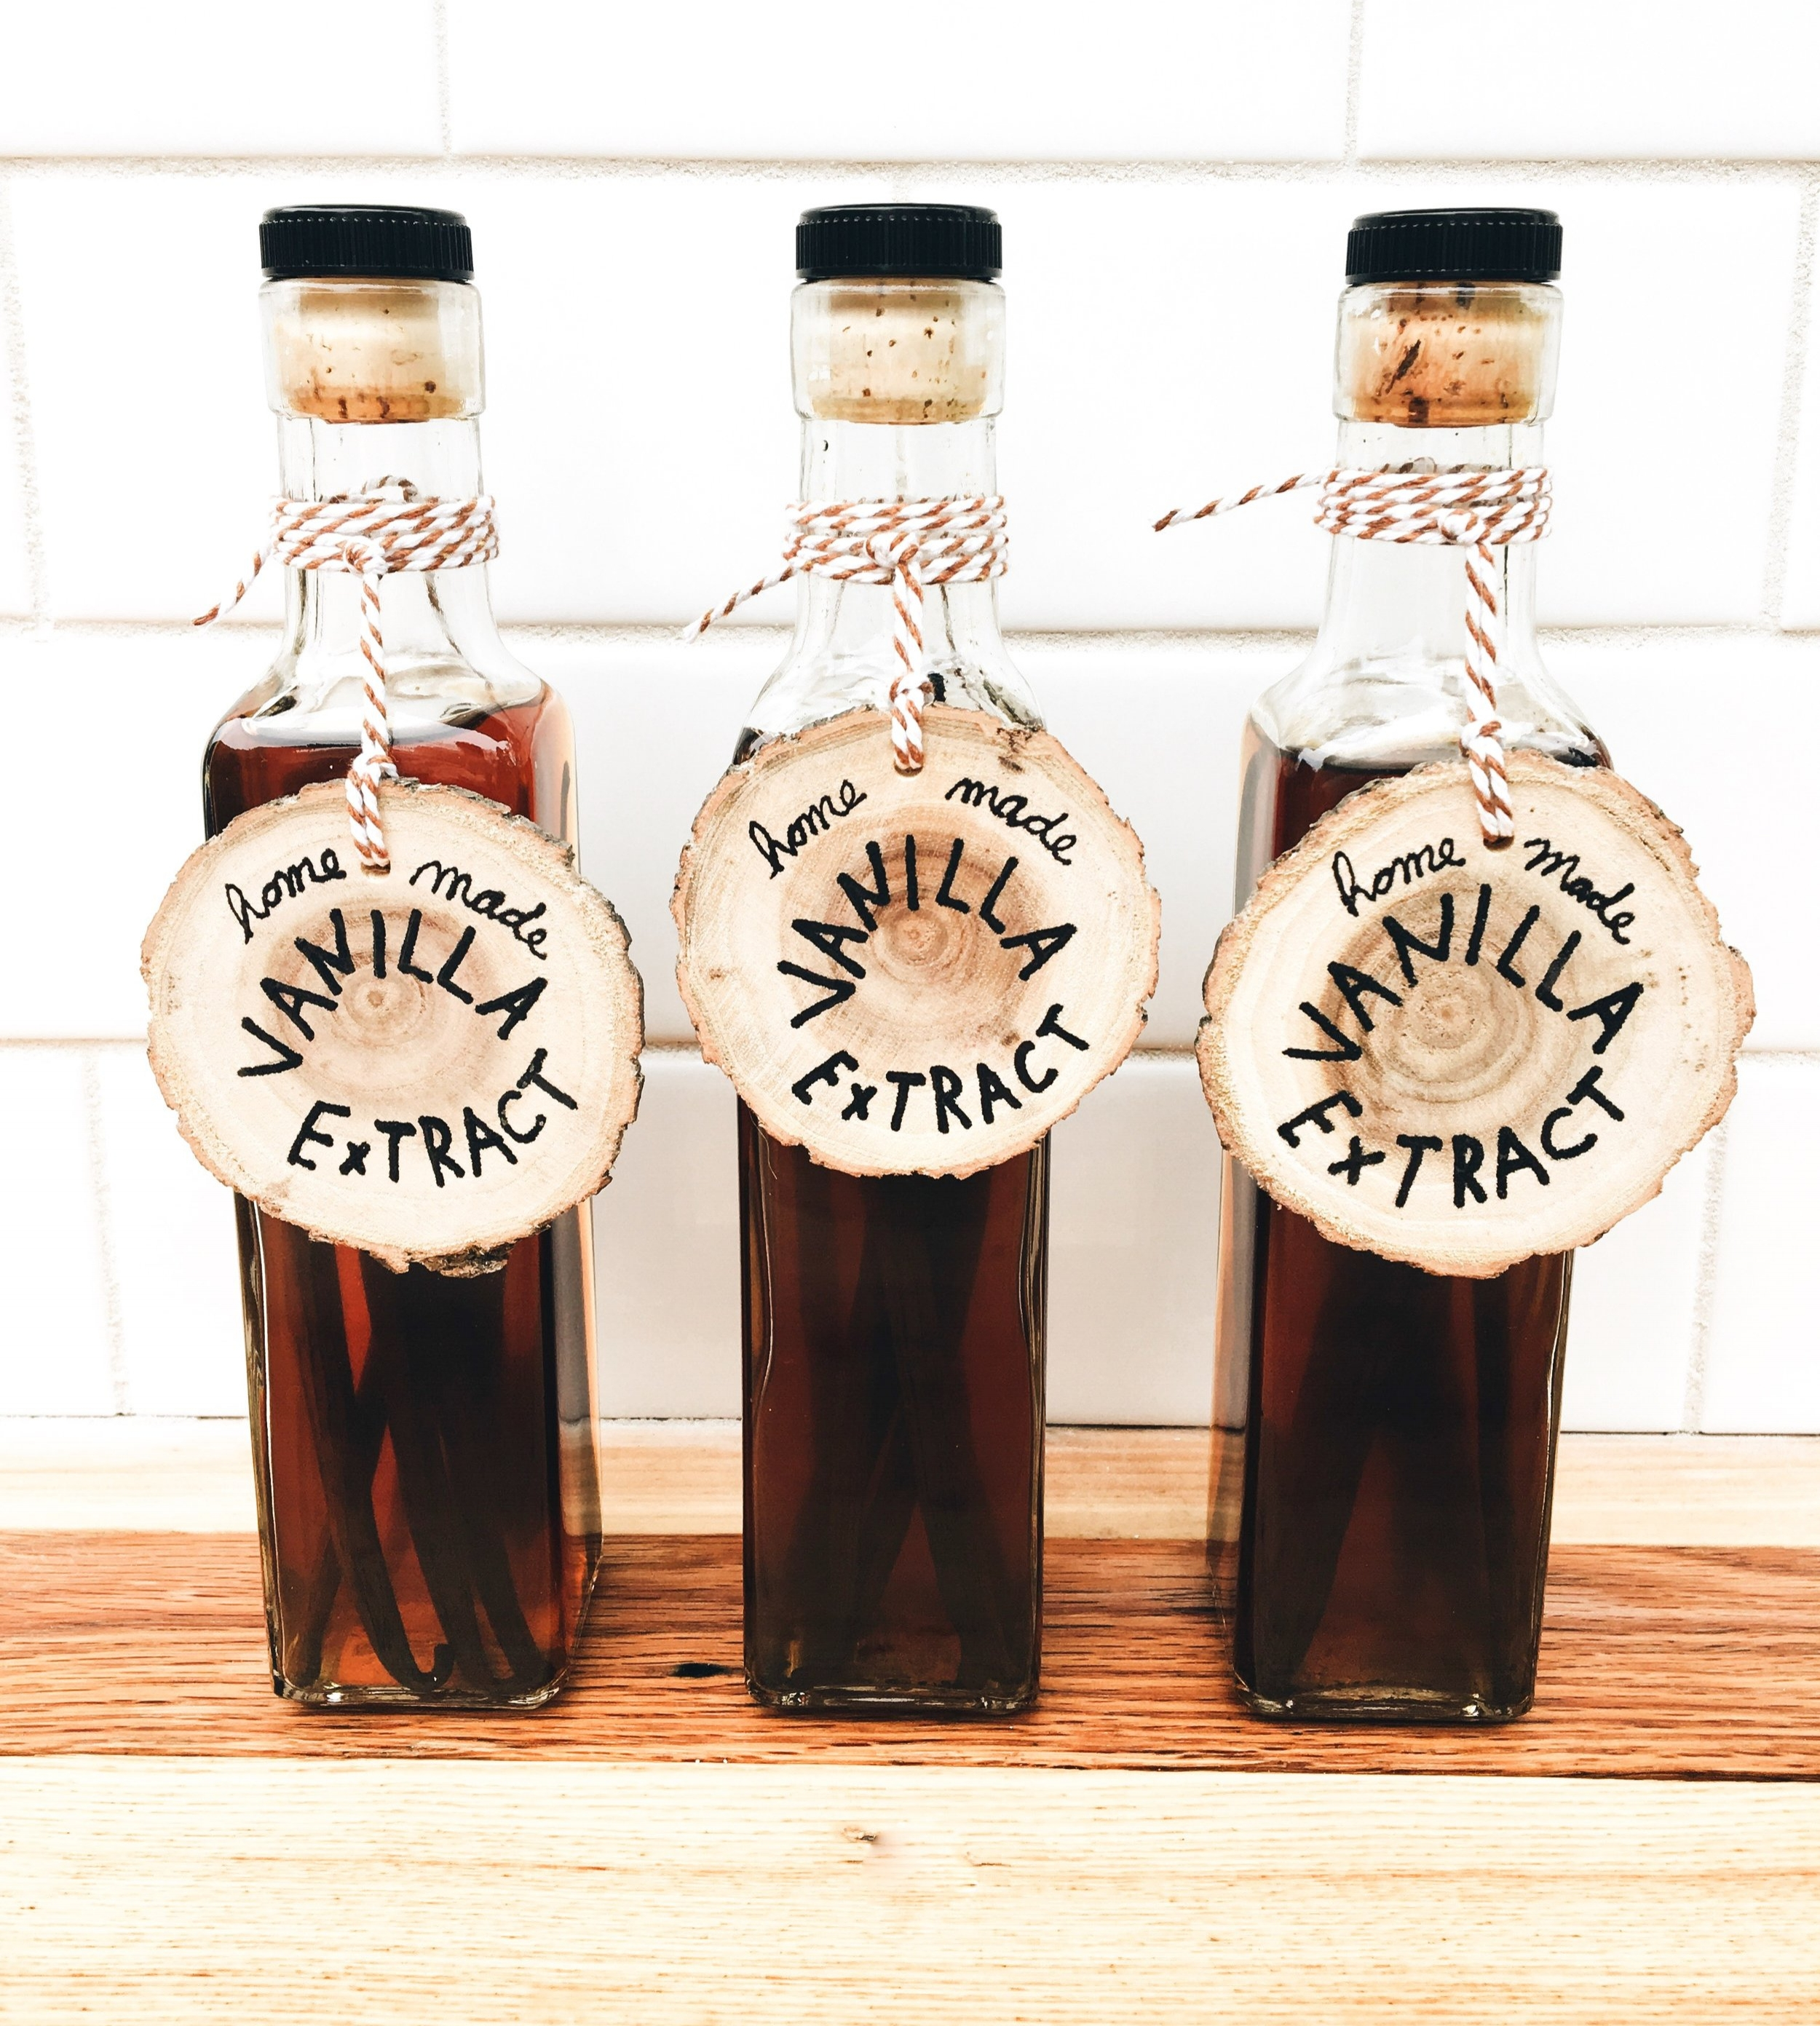 Homemade Gift Ideas For Those Who Love To Bake - How To Make Your Own Vanilla Bean Extract